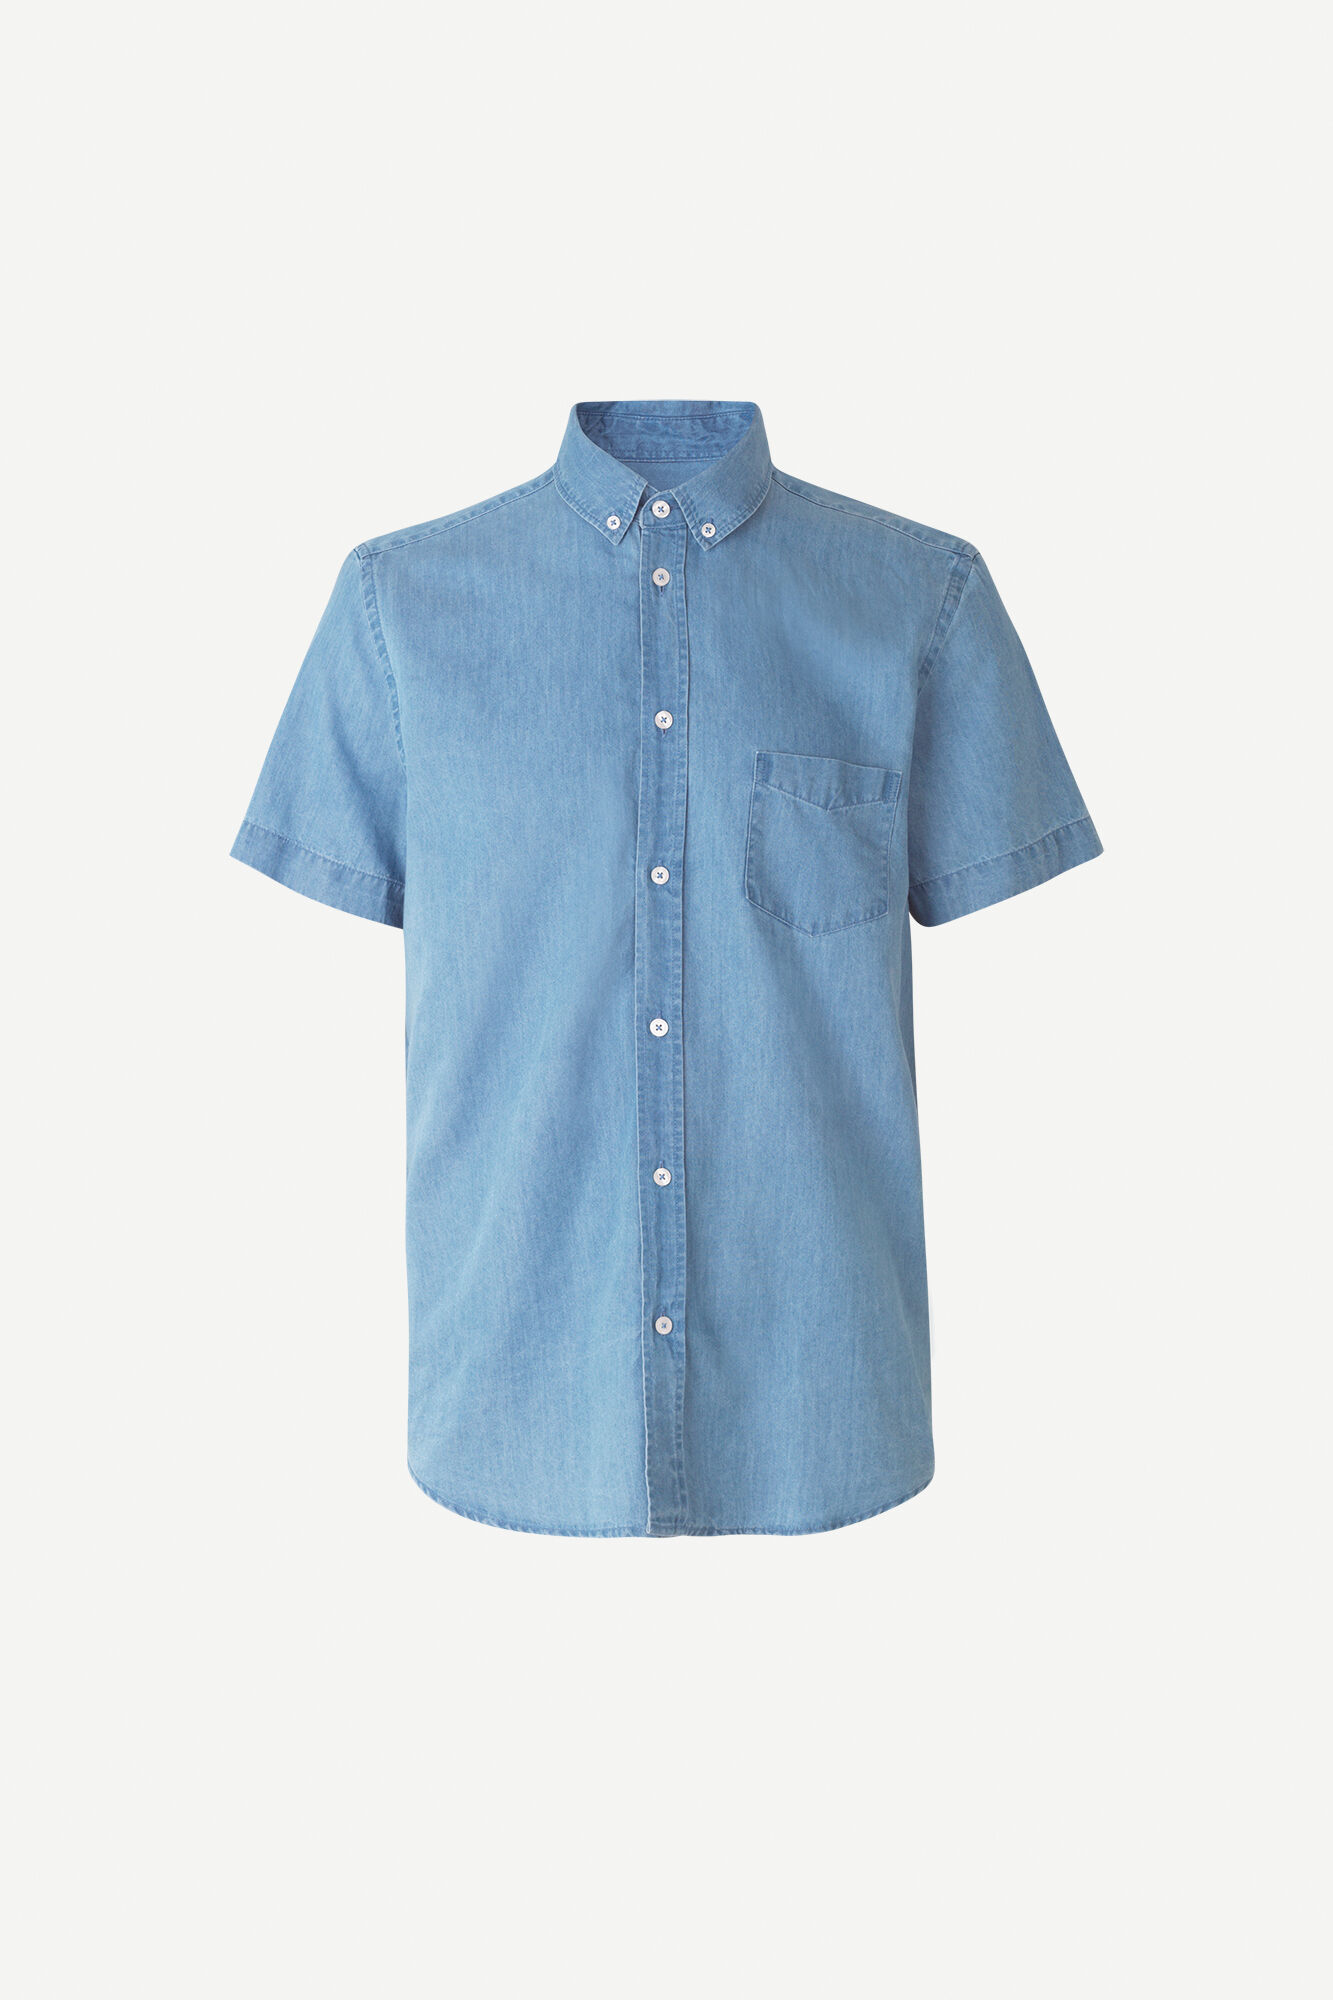 Vento BA shirt 11379, DREAM BLUE